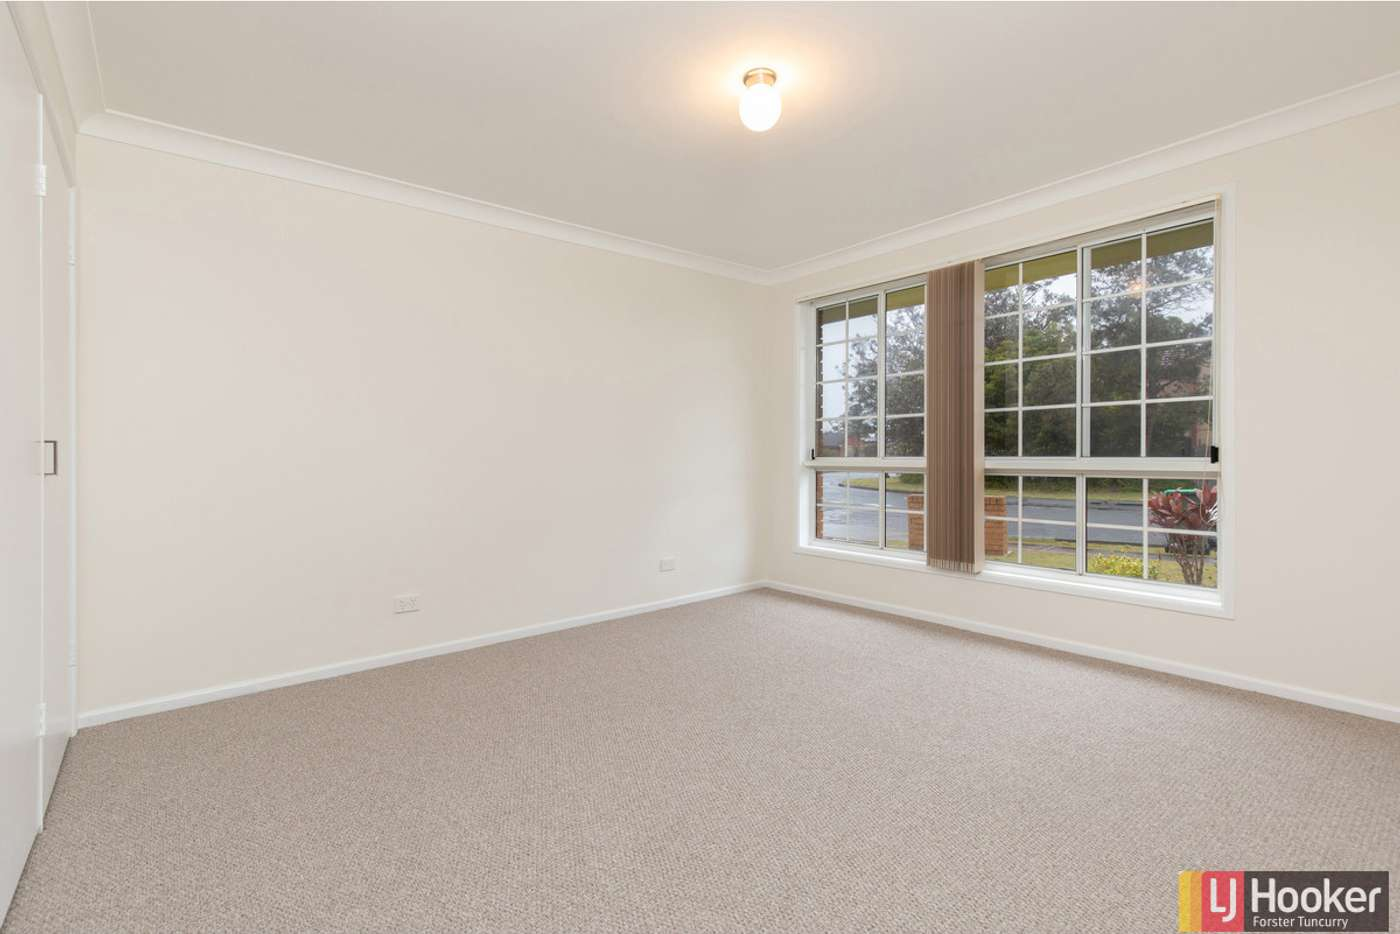 Sixth view of Homely villa listing, 1/4 Heath Avenue, Tuncurry NSW 2428